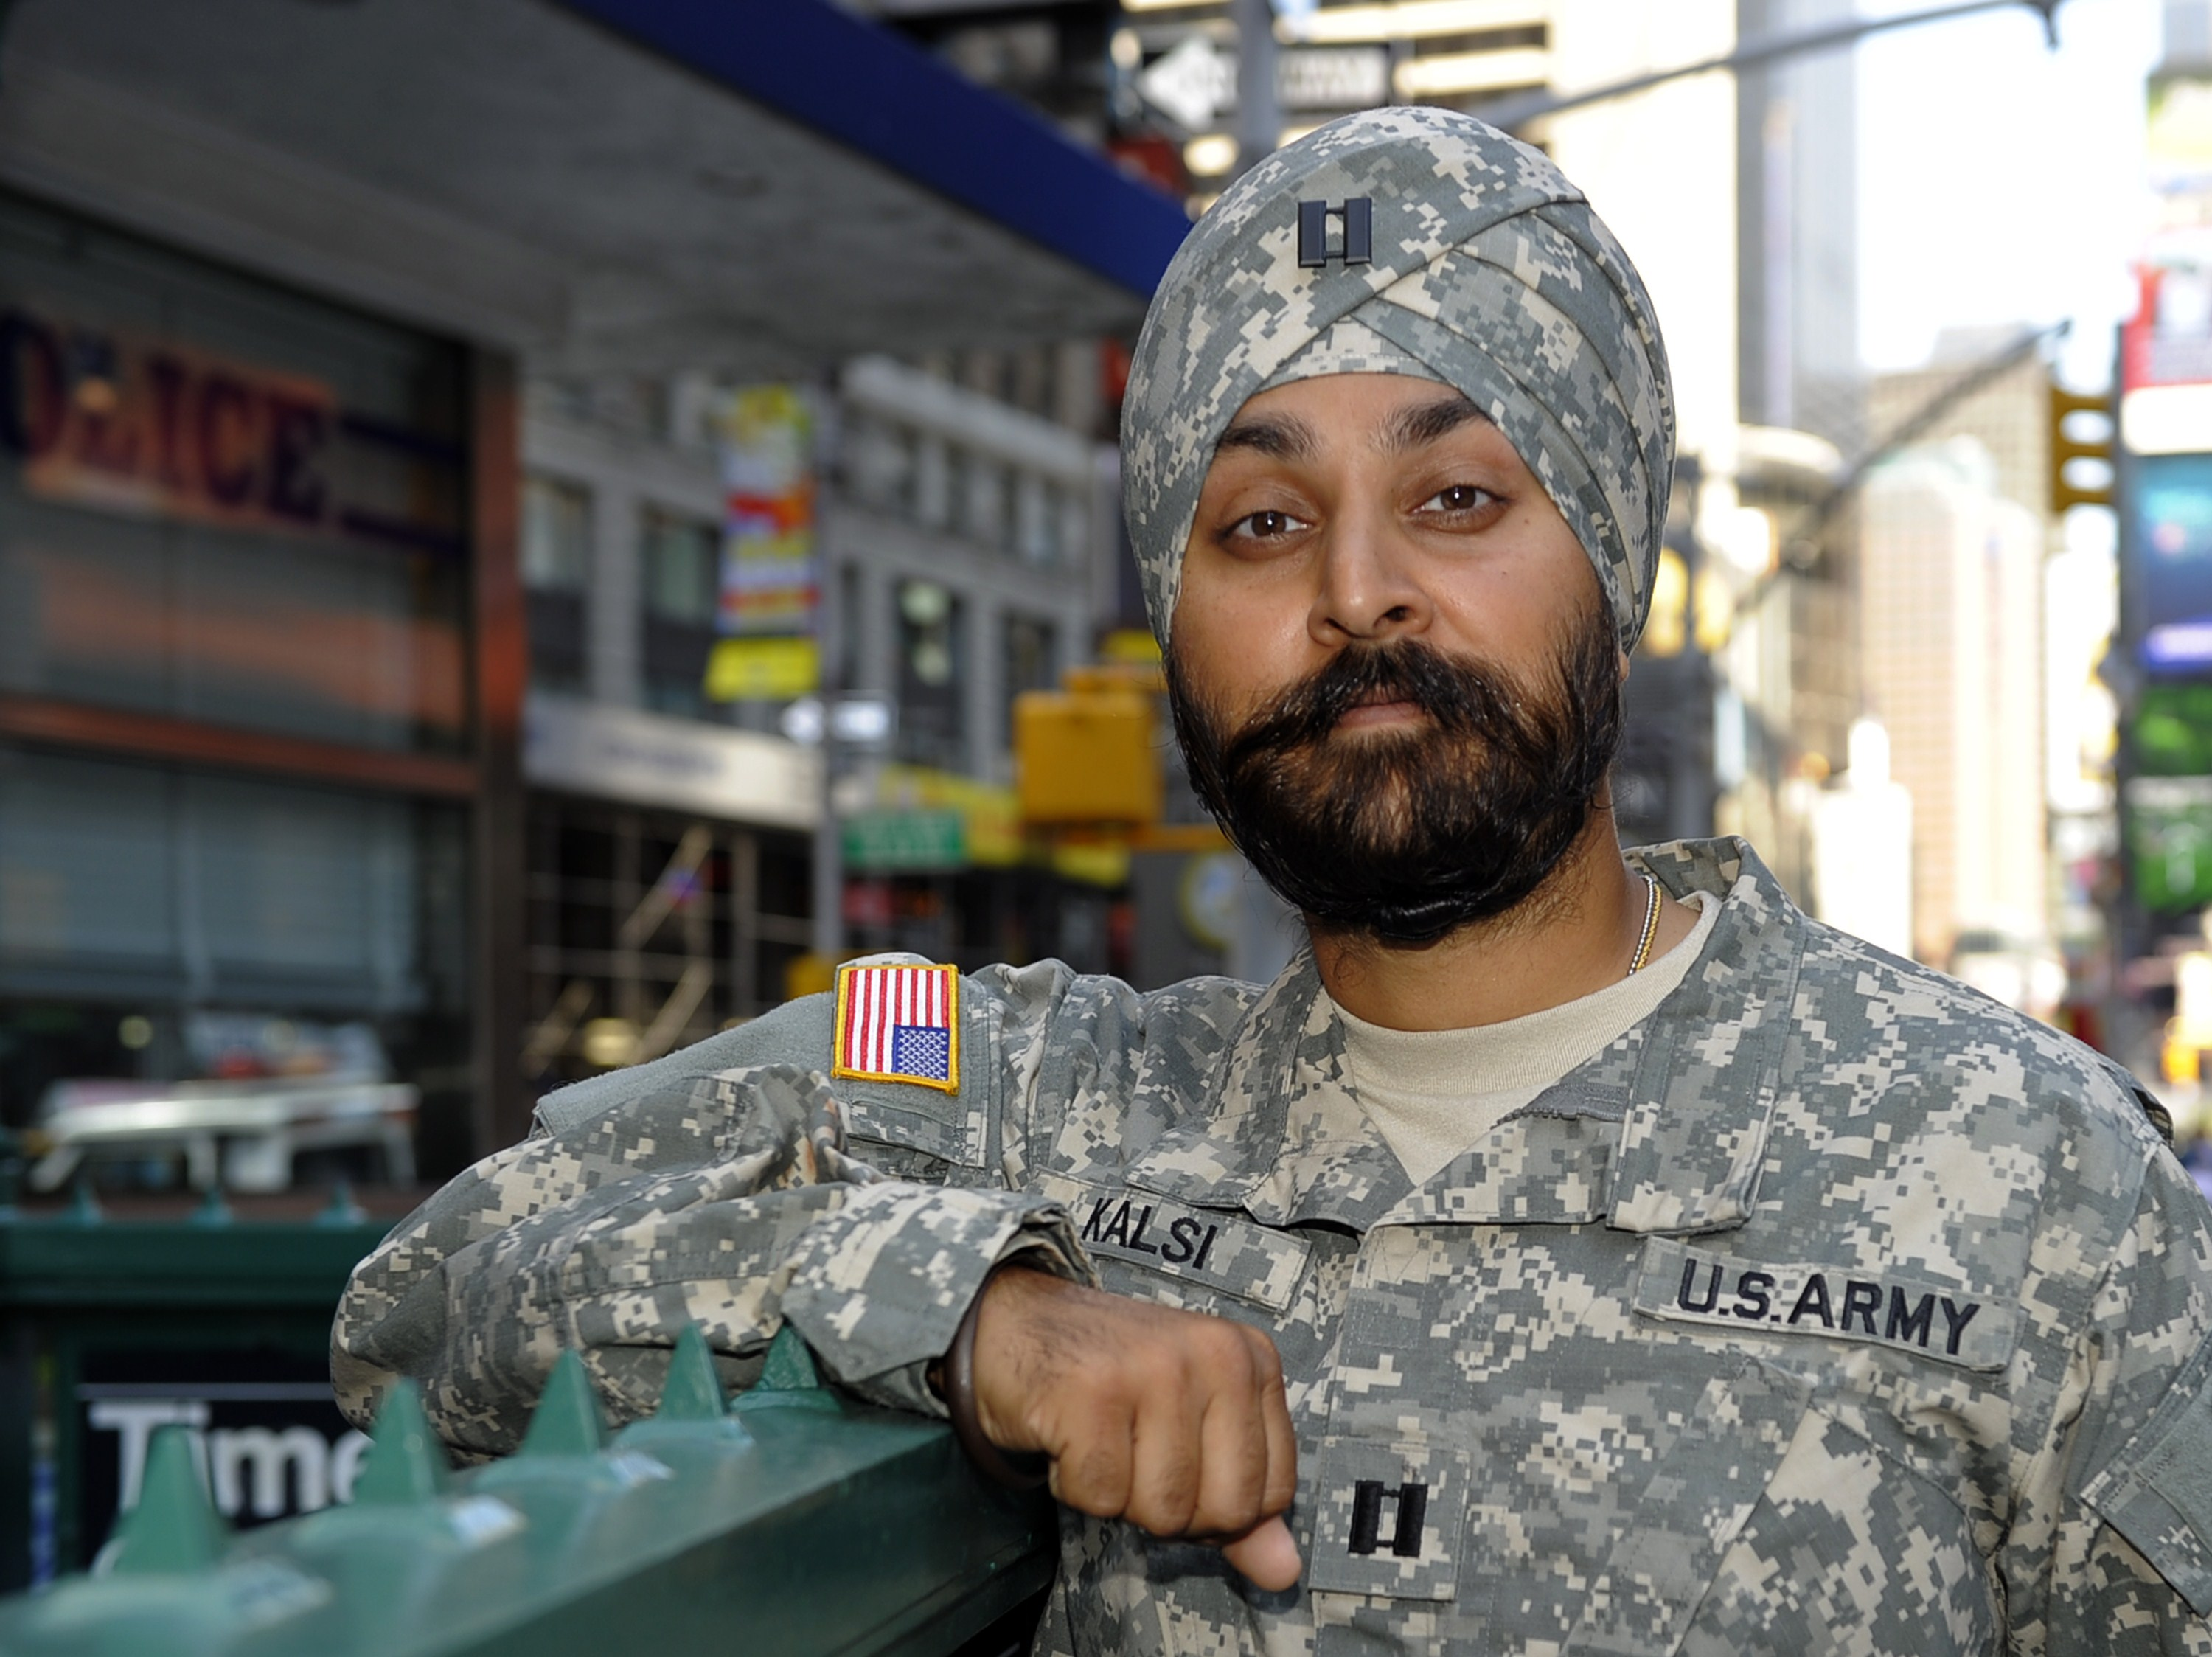 Army Major Kamal Kalsi, a Sikh doctor based at Fort Bragg, N.C., earned the Bronze Star in Afghanistan.